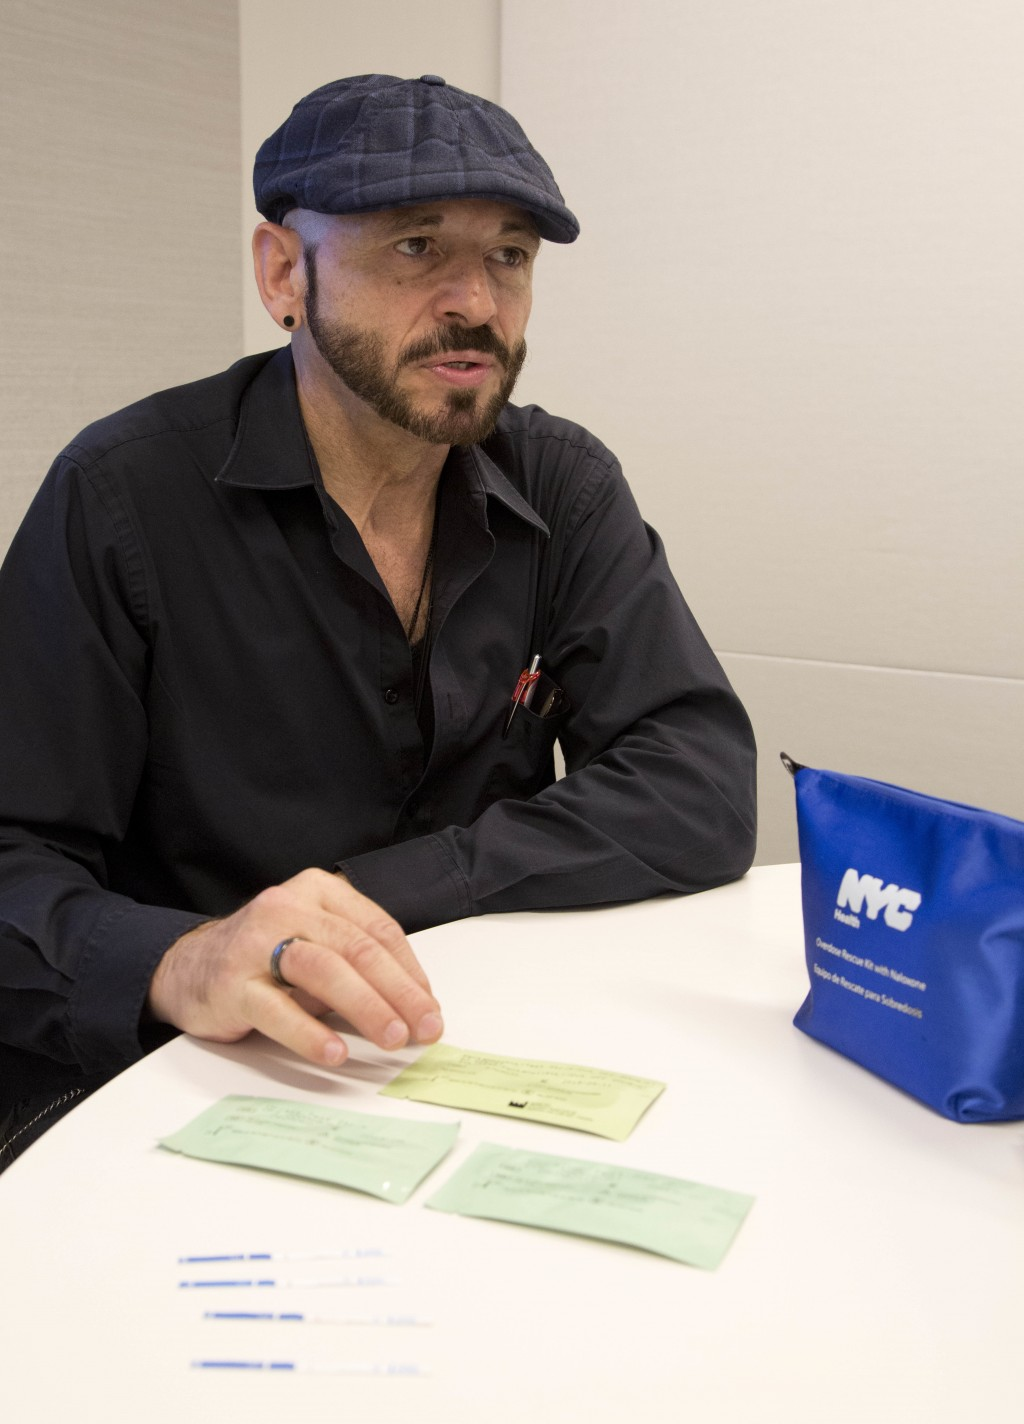 Tino Fuentes, a former heroin user and drug dealer, who is now an advocate for fentanyl test strips, talks during an interview in New York on May 10, ...